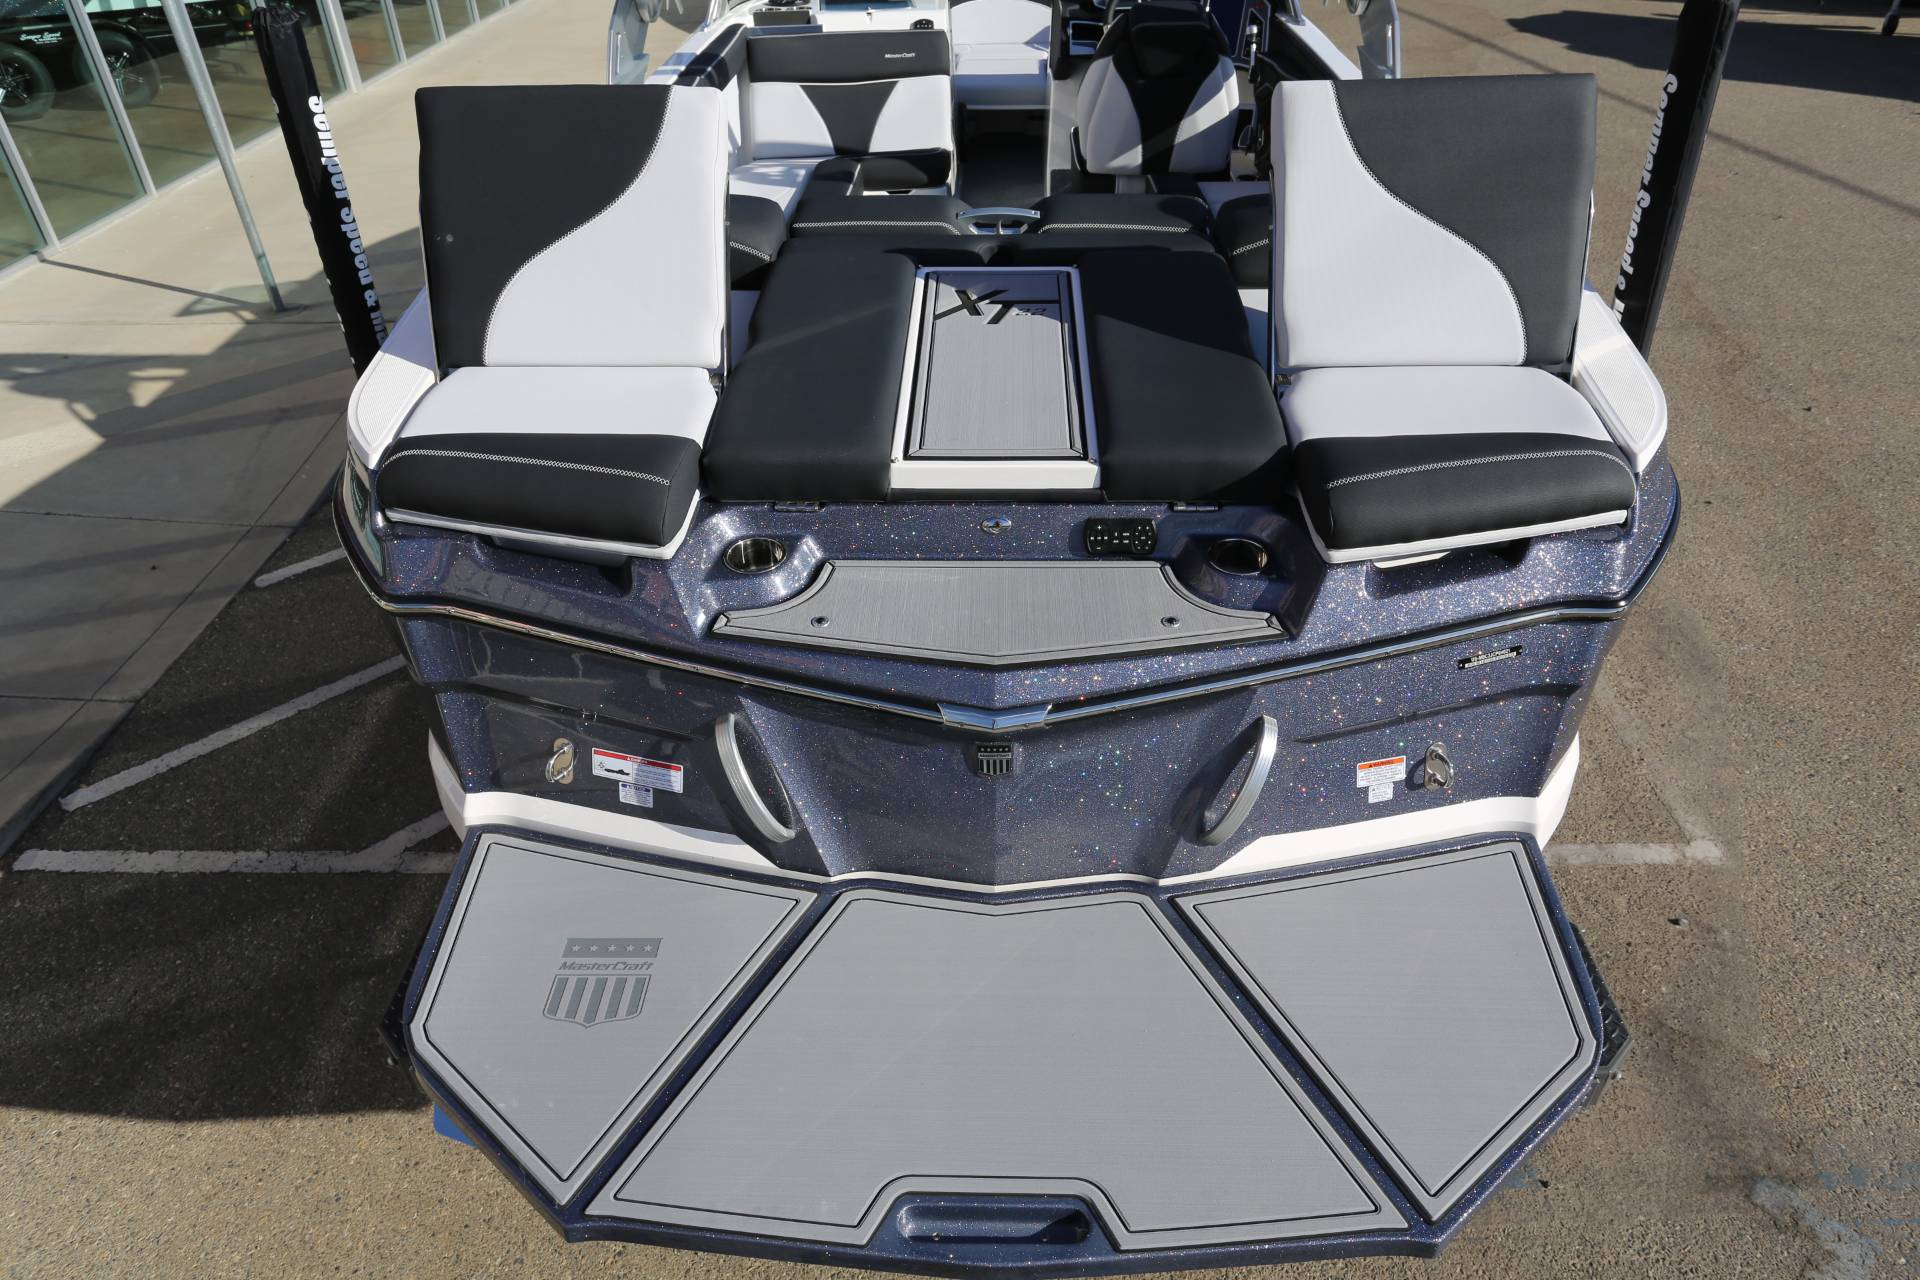 2021 Mastercraft XT22 in Madera, California - Photo 10